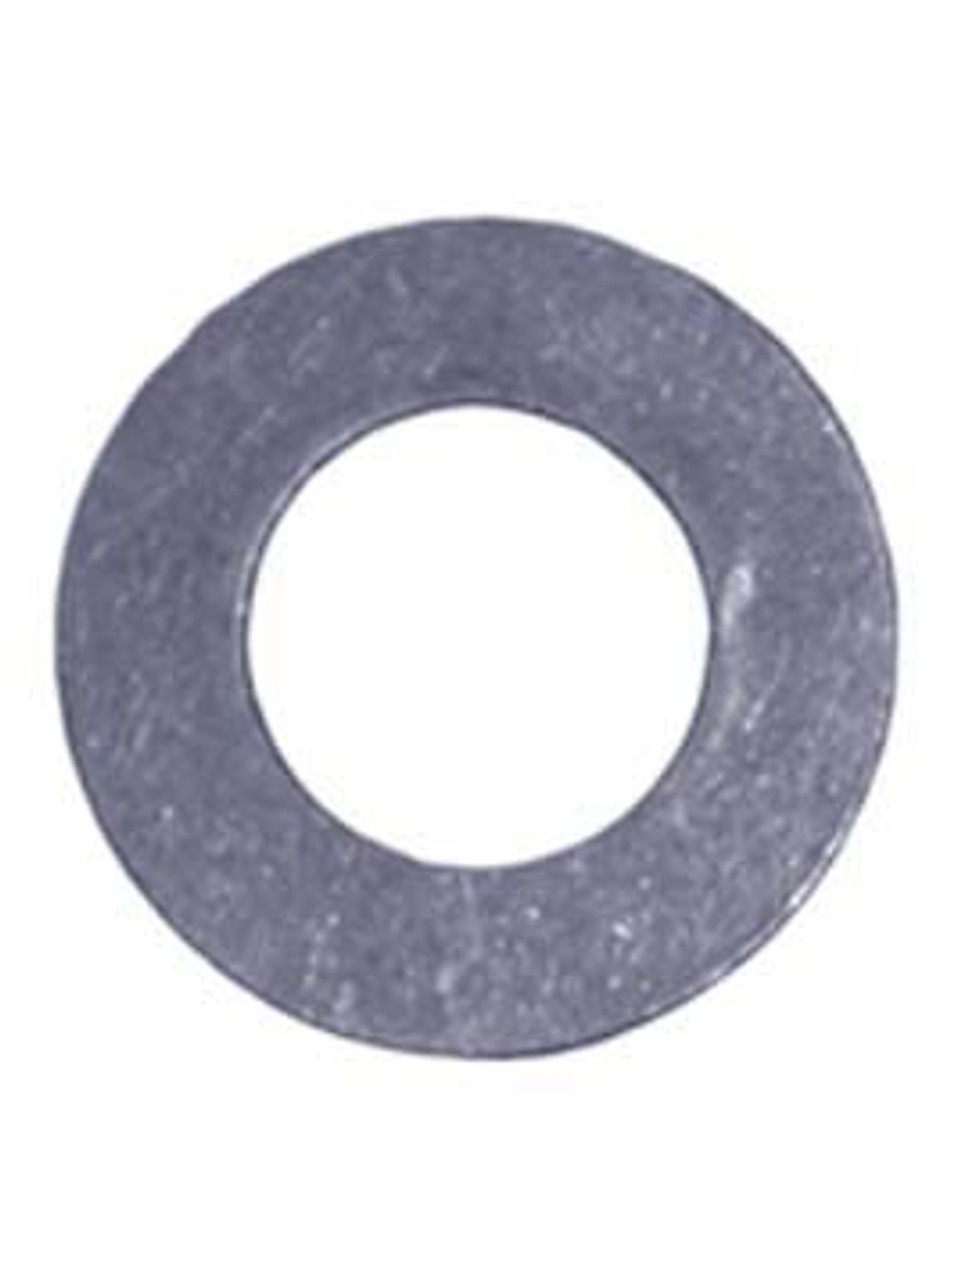 5-147 --- Nev-R-Lube Spindle Washer 42mm